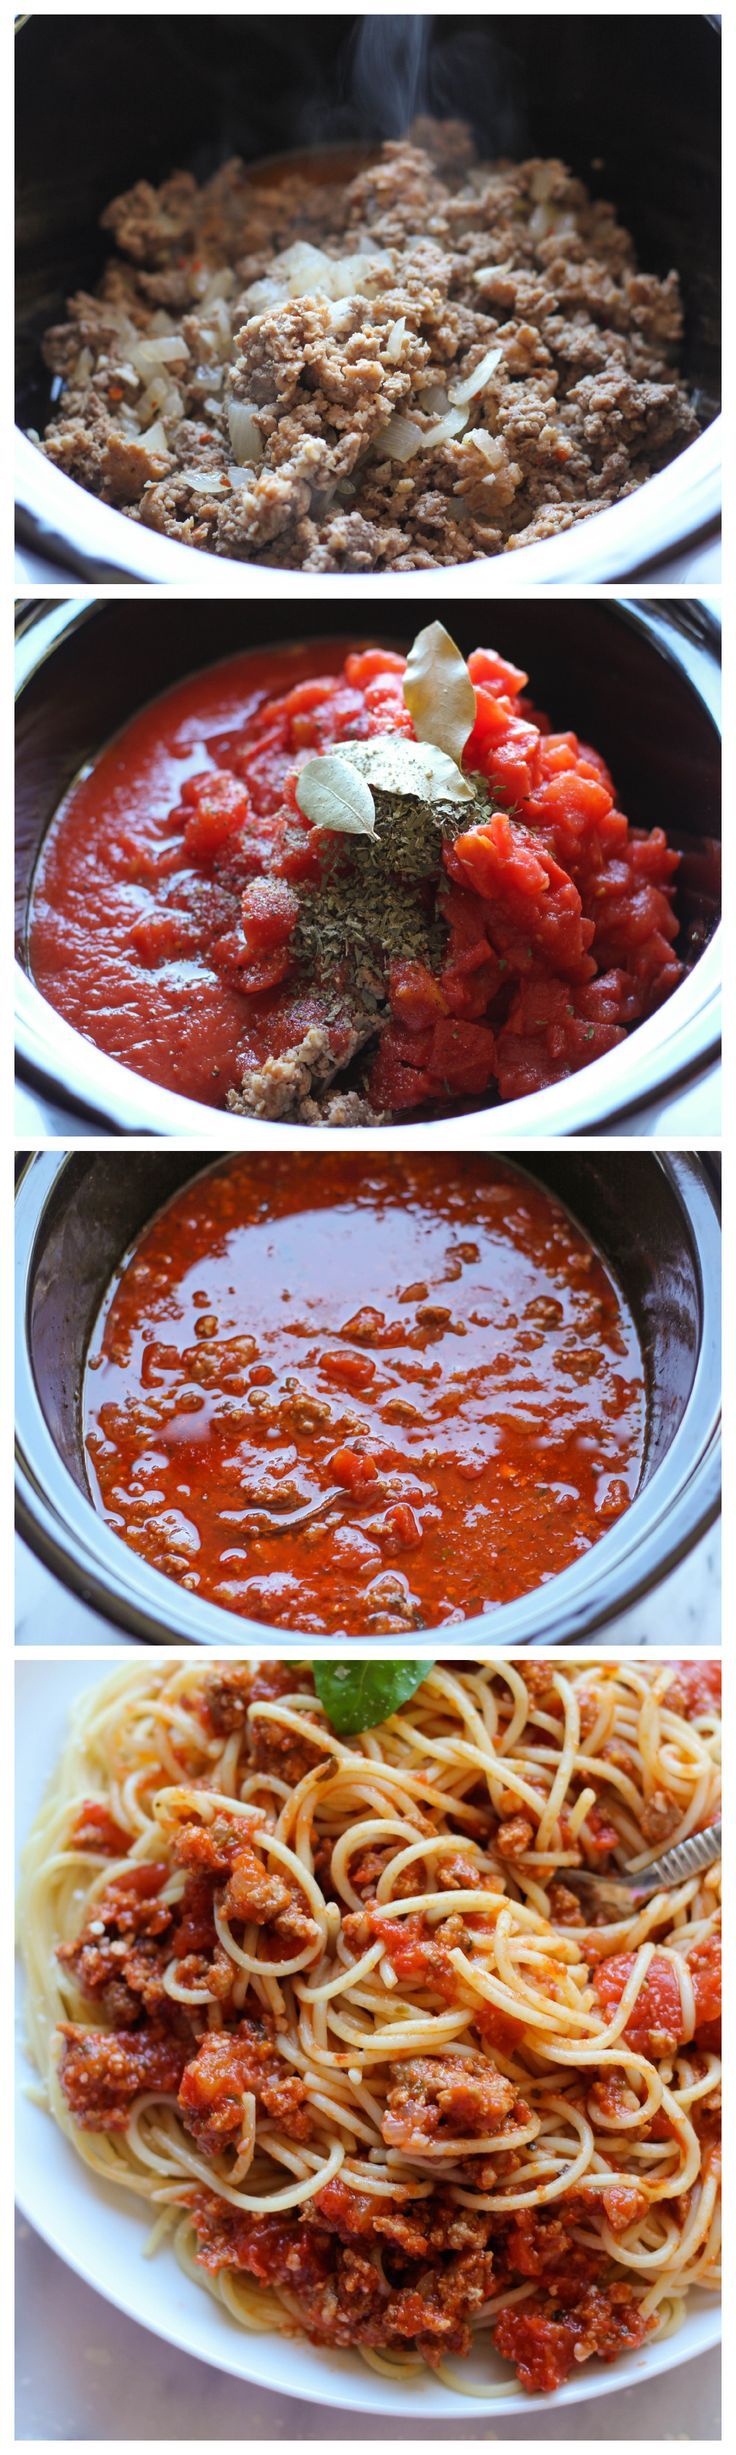 Slow Cooker Spaghetti Sauce - A rich and meaty spaghetti sauce easily made in the crockpot. It makes enough to feed an army and you can freeze the leftovers!